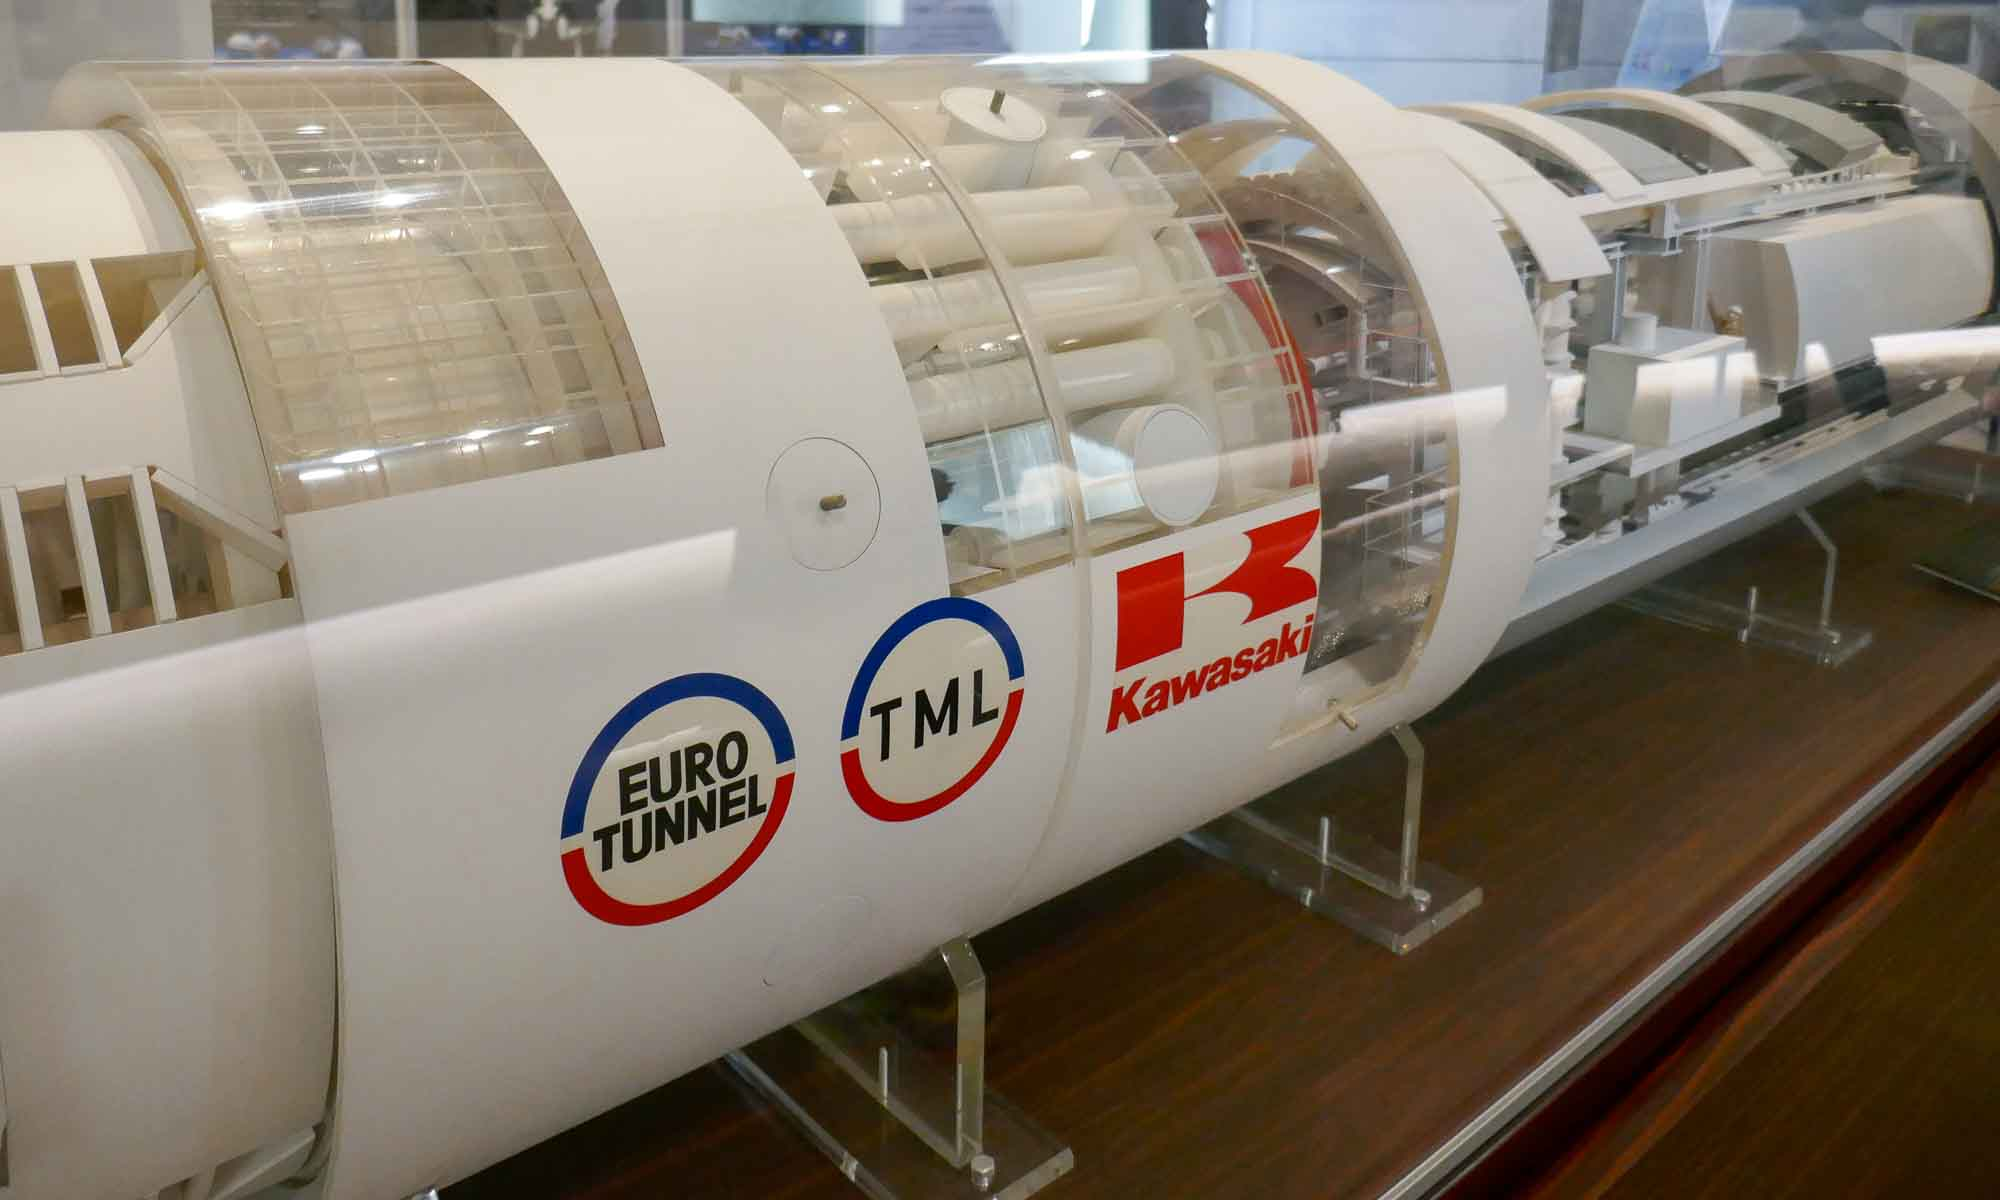 Two Kawasaki Boring Machines (1/20 scale) drilled the Eurotunnel, between France and England